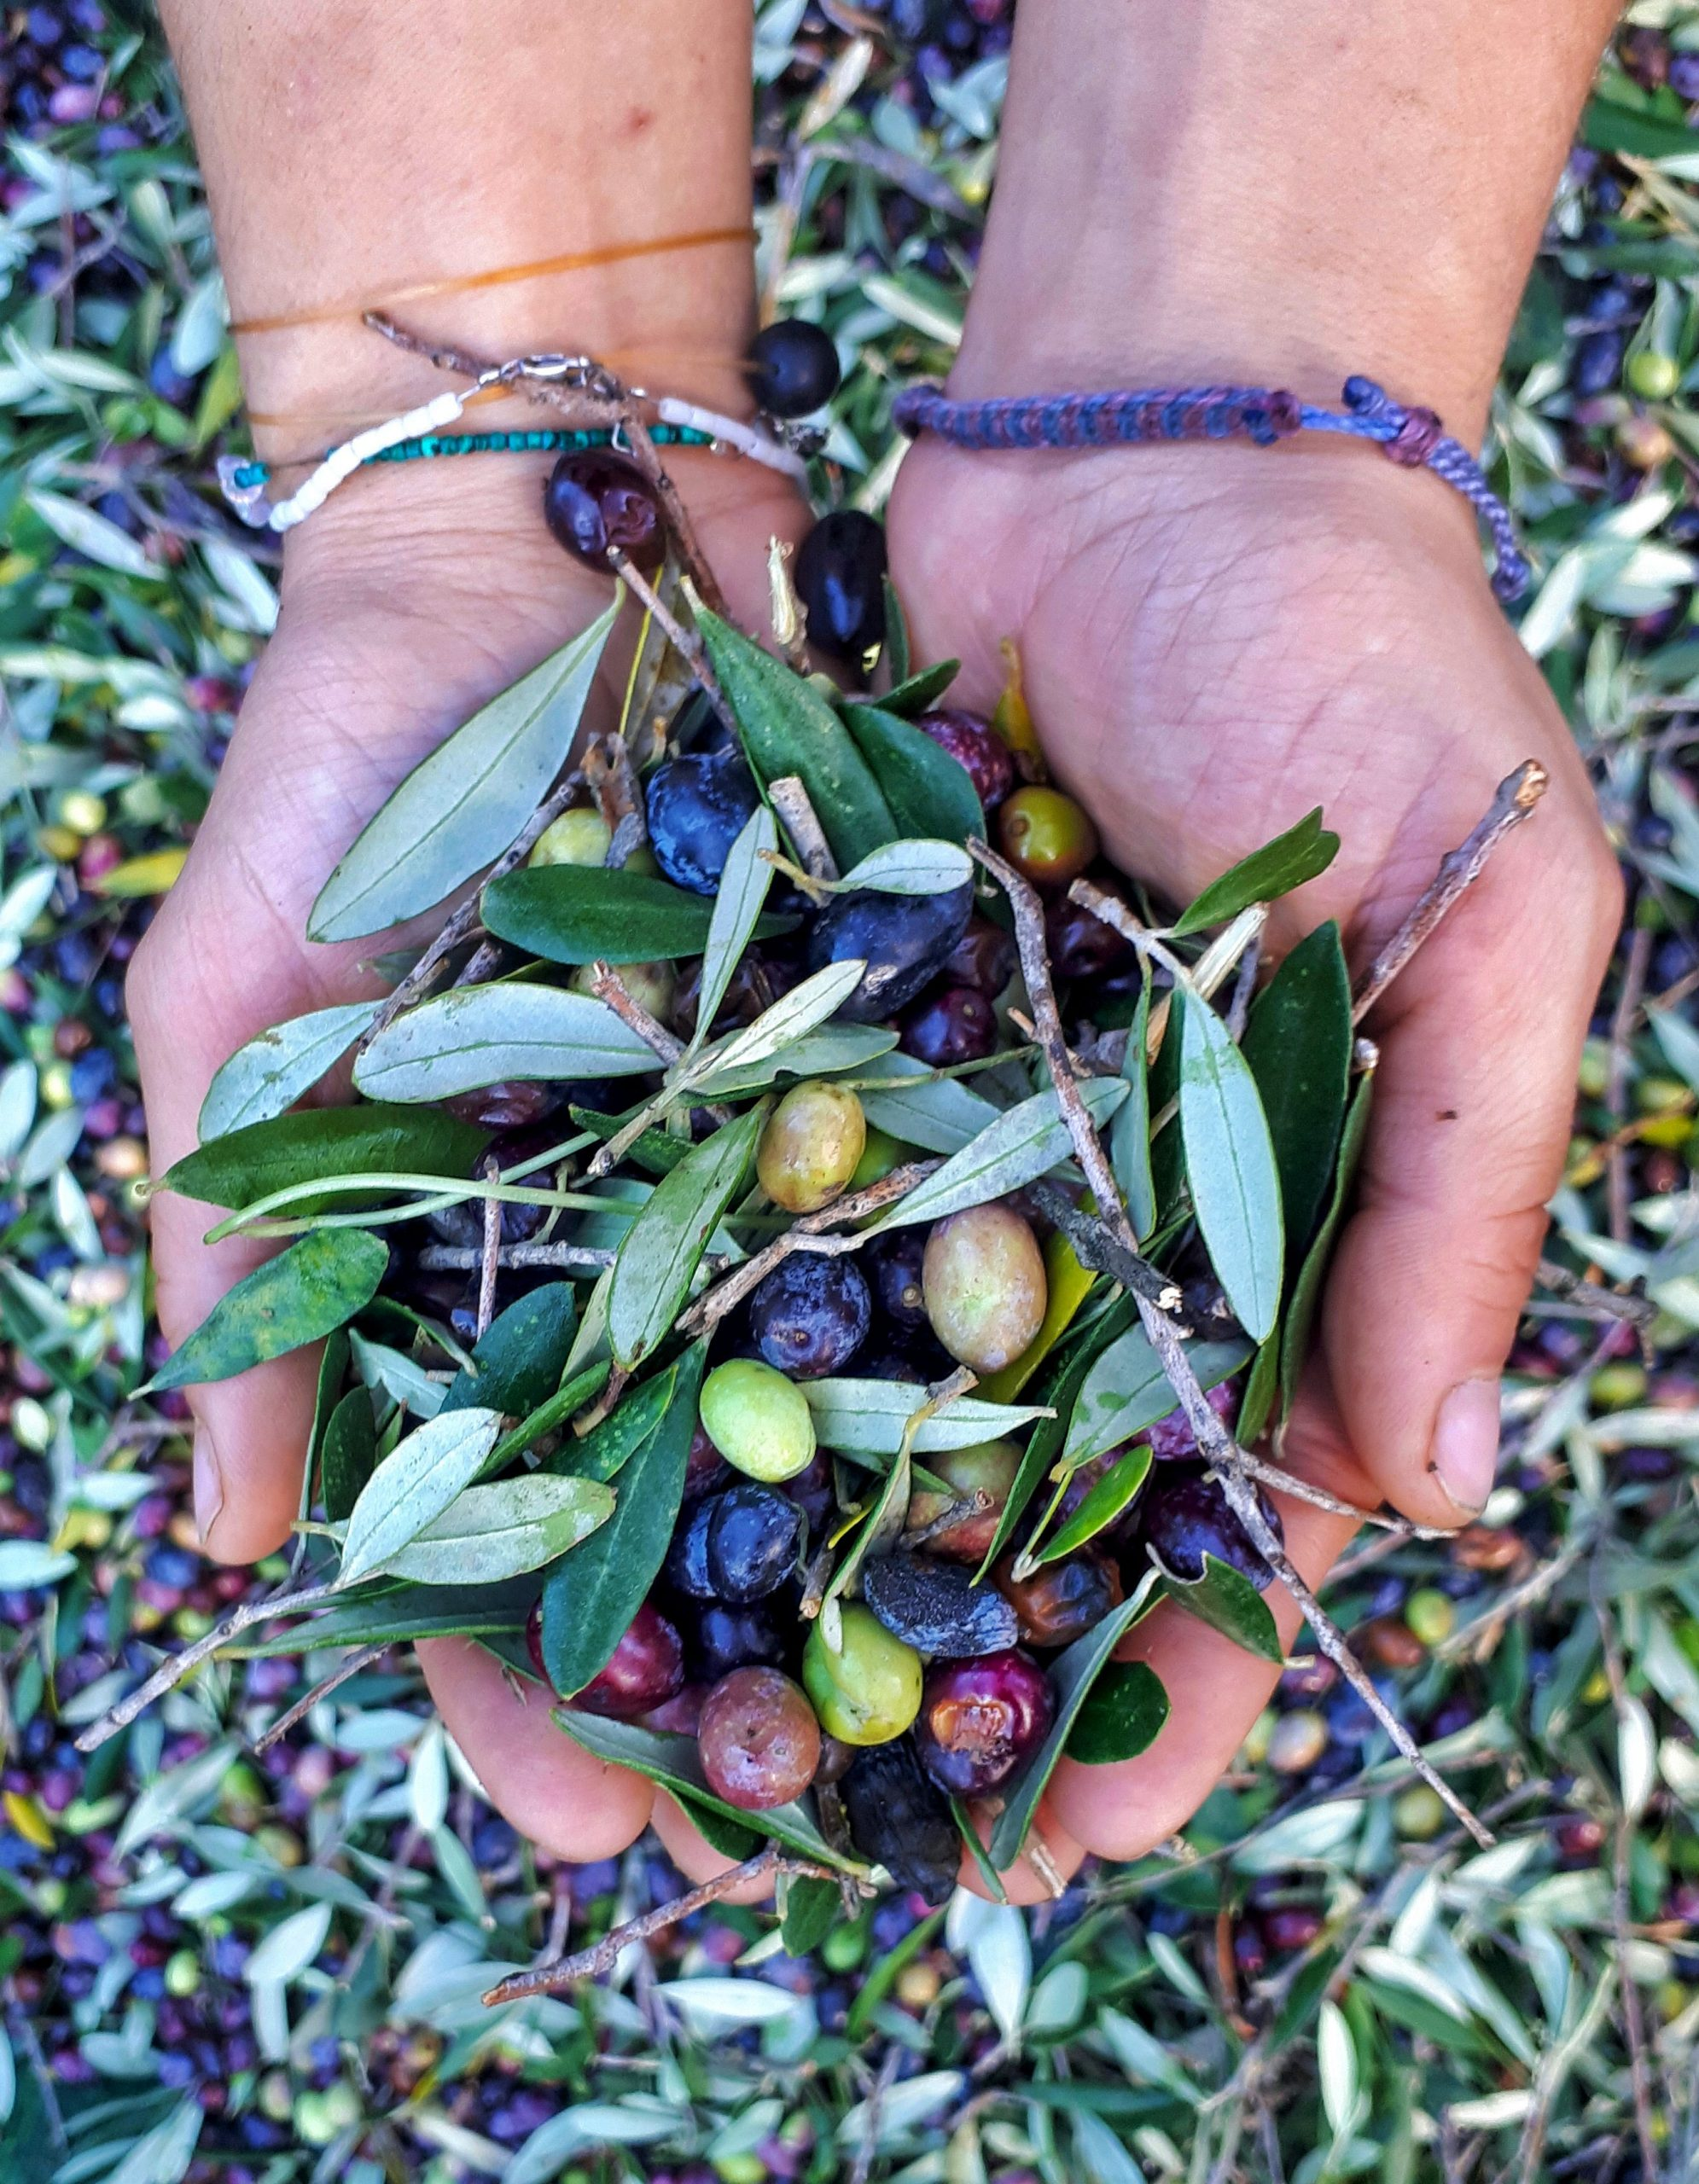 Holiday villas, sun and olives in Crete. Holding olives between the hands.